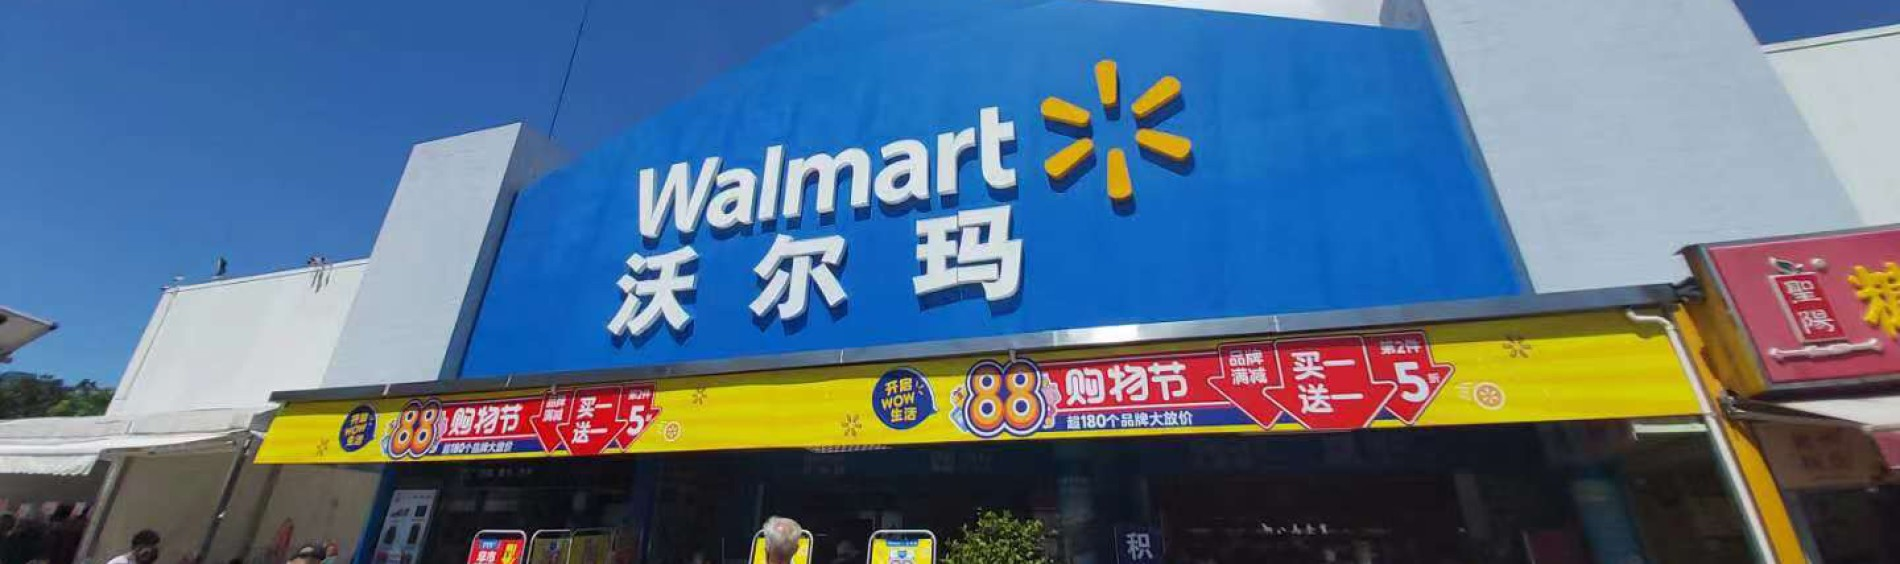 The exterior of a Walmart in China